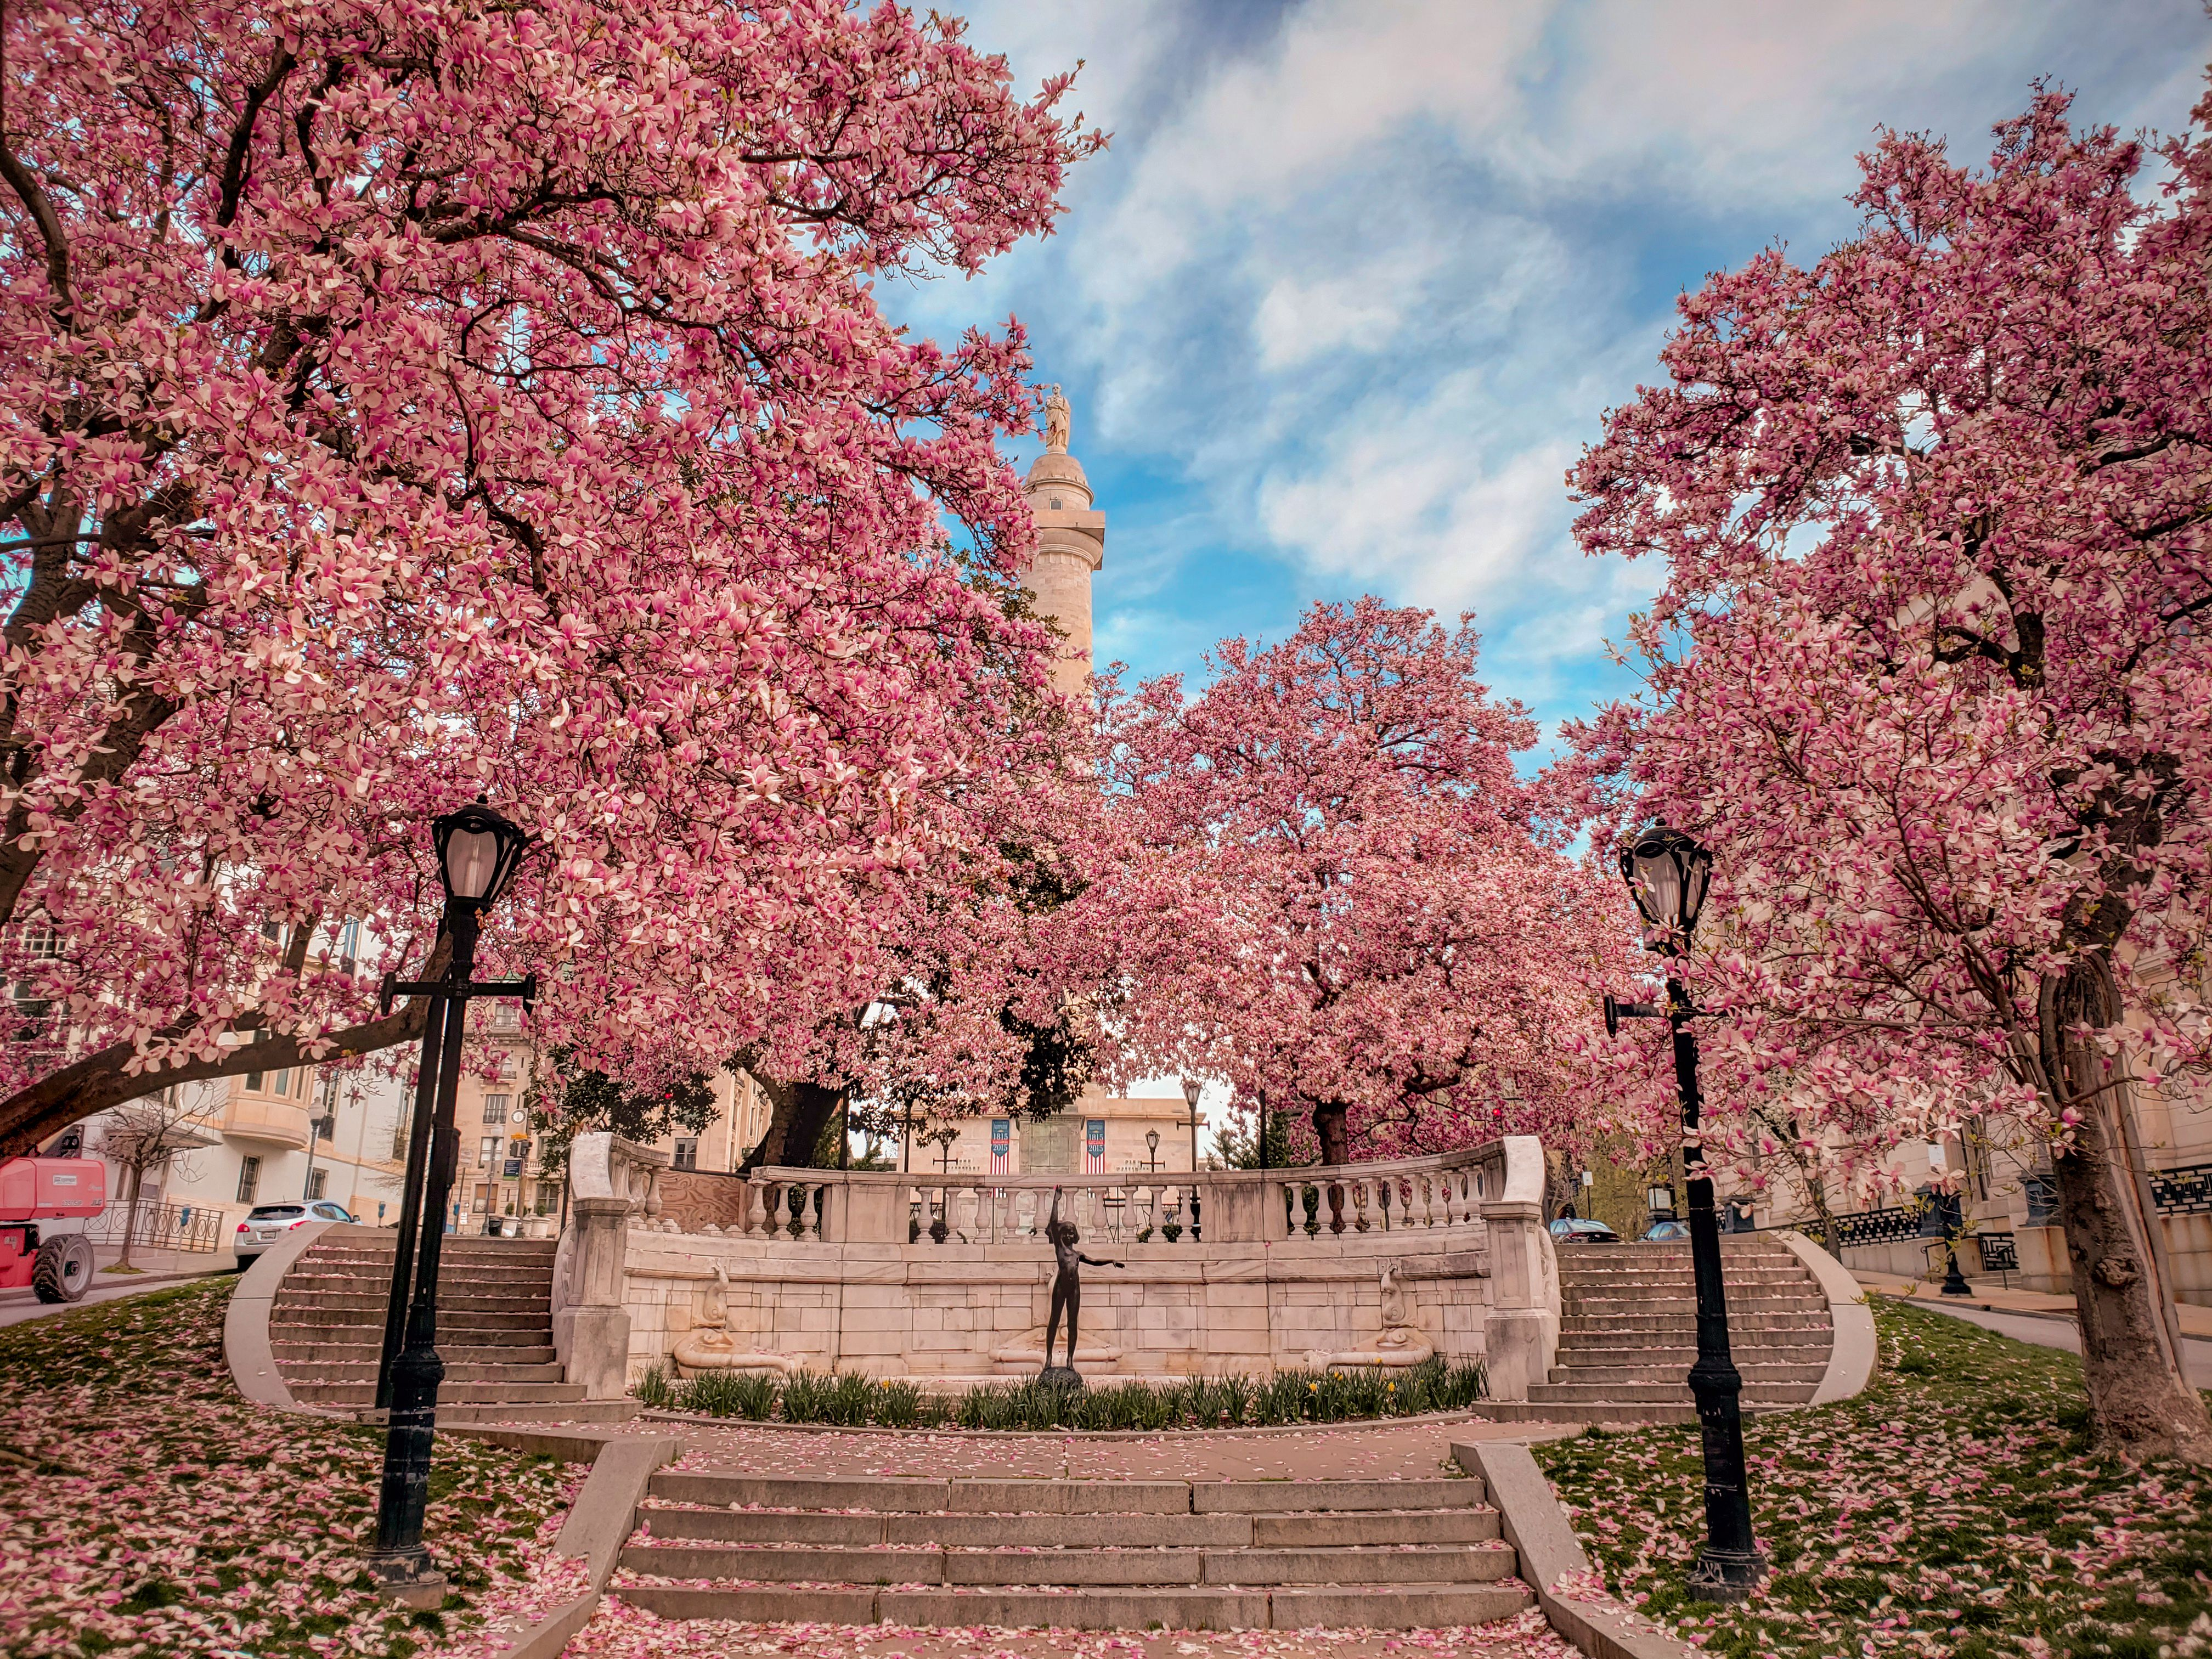 Pin By Ly Huynh On Beautiful Sceneries Cherry Blossom Festival Dc Cherry Blossom Festival Cherry Blossom